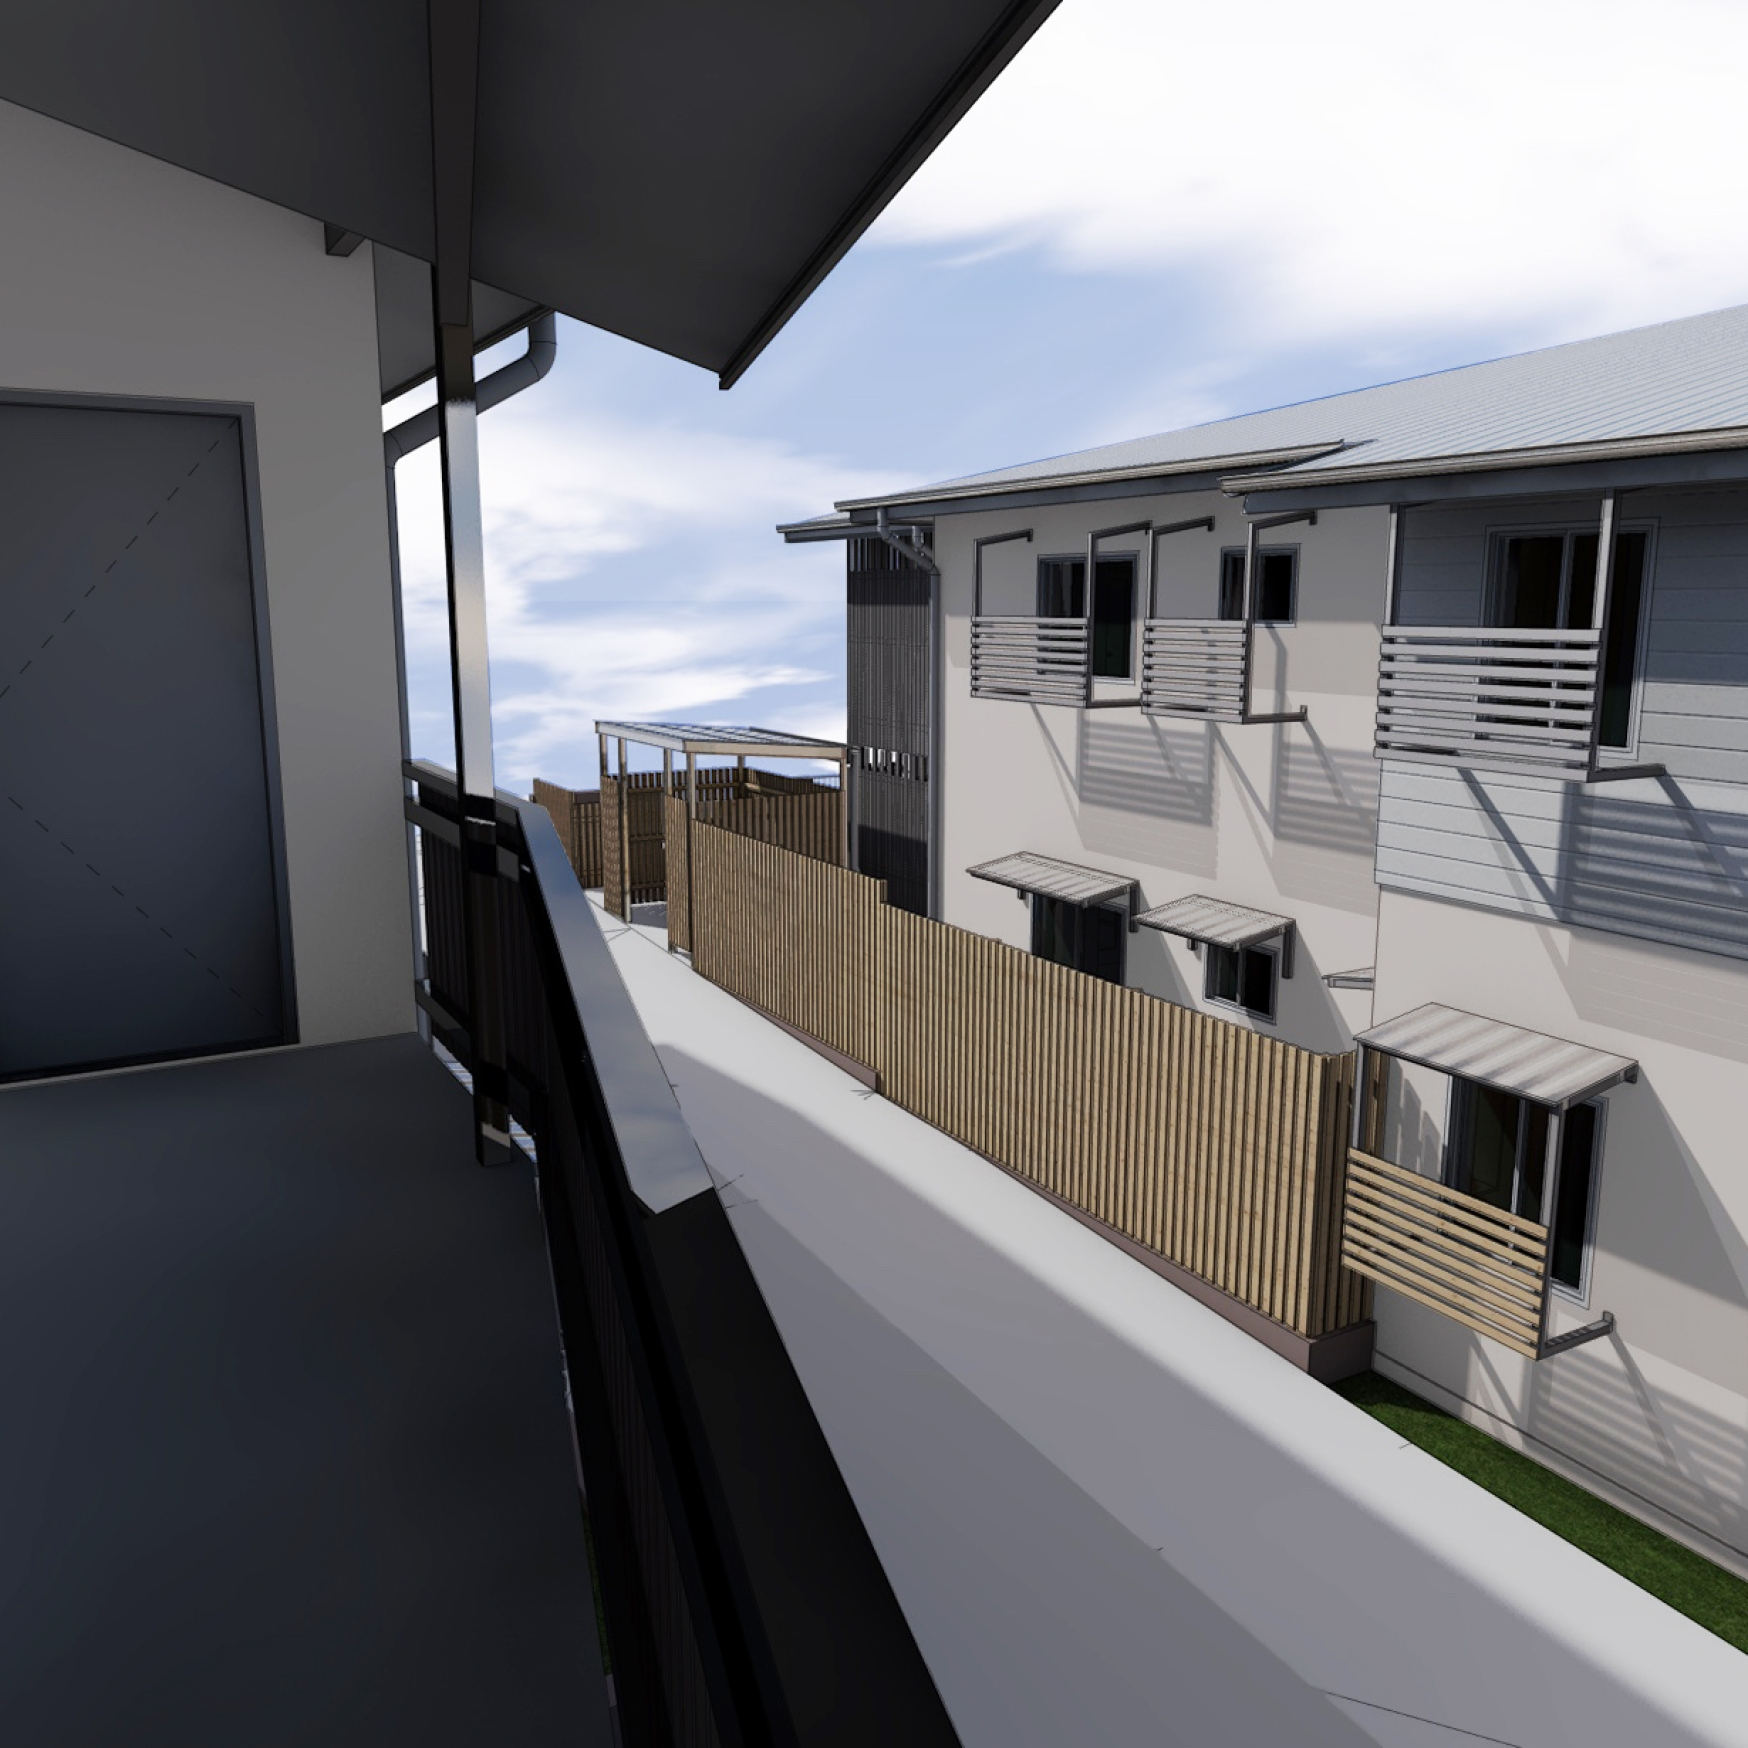 Nundah Social Housing Project by BWA